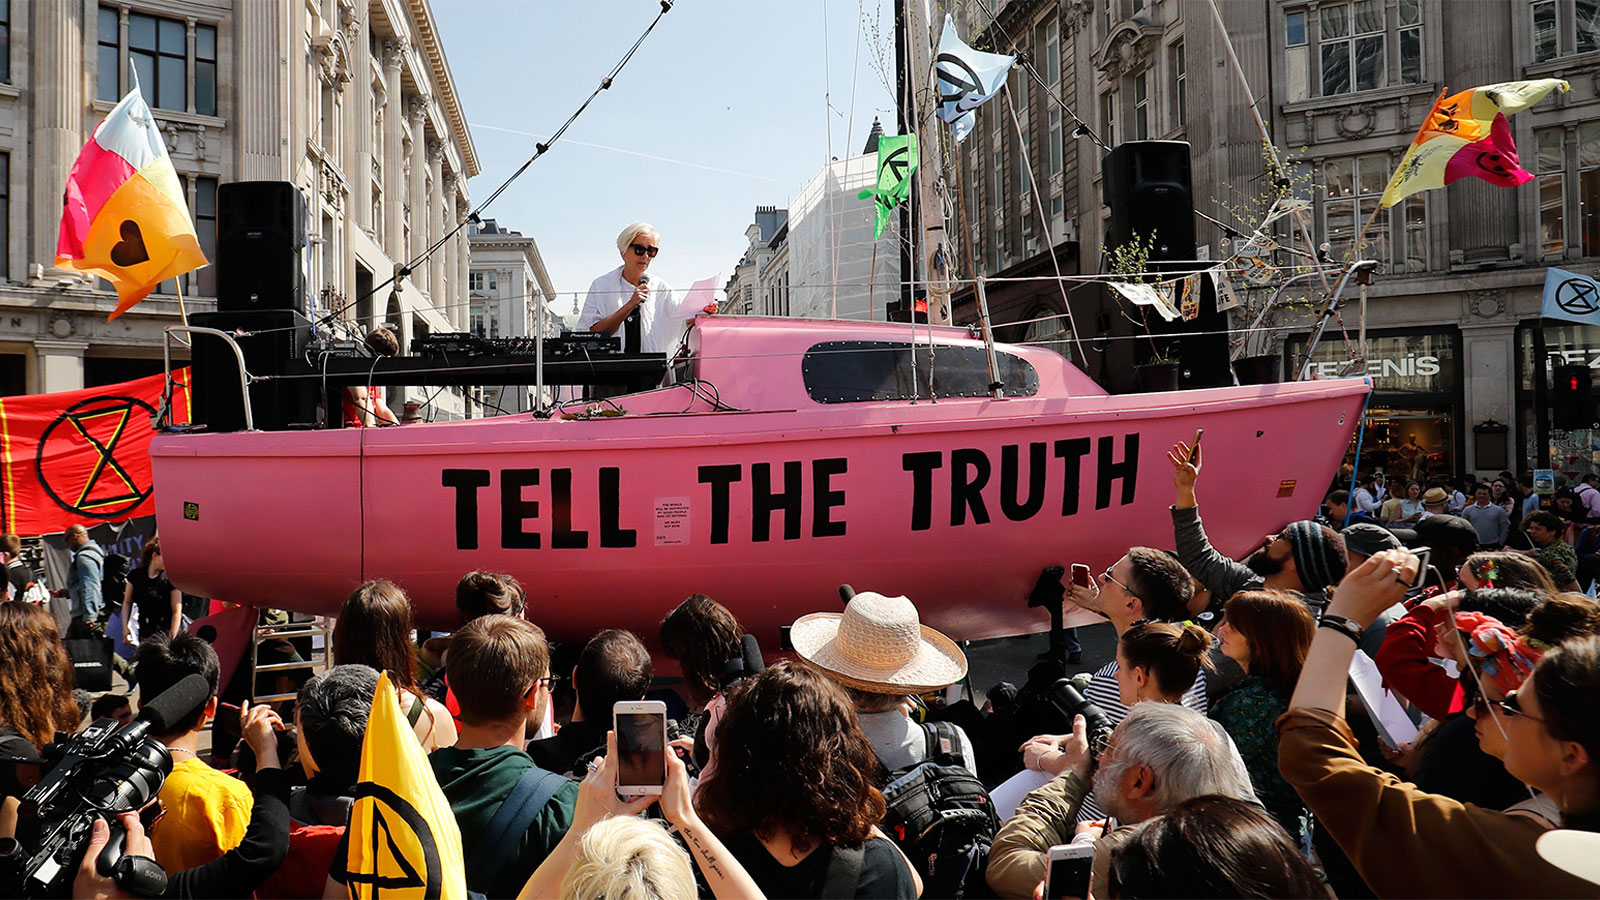 British actress Emma Thompson gives an address from the stage atop a pink boat during an Extinction Rebellion protest